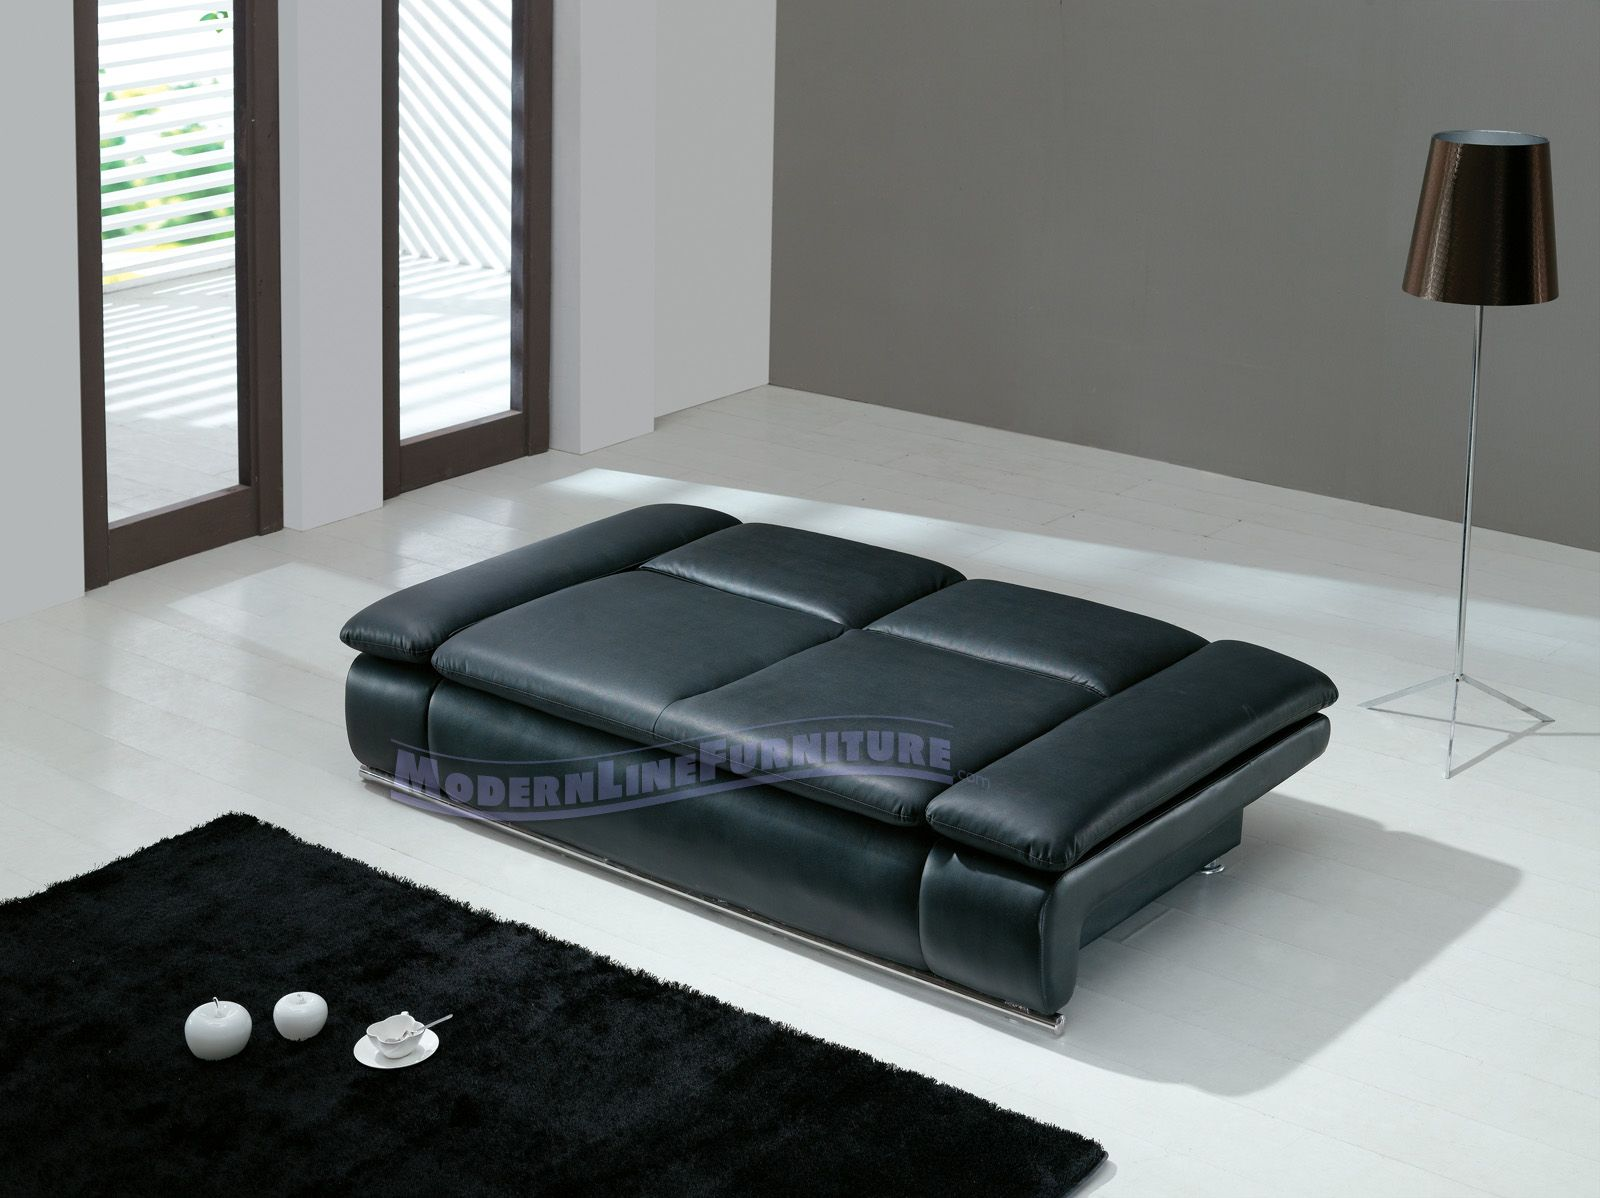 Magnetic floating beds click on image to enlarge it  fab stuff  pinterest  click on